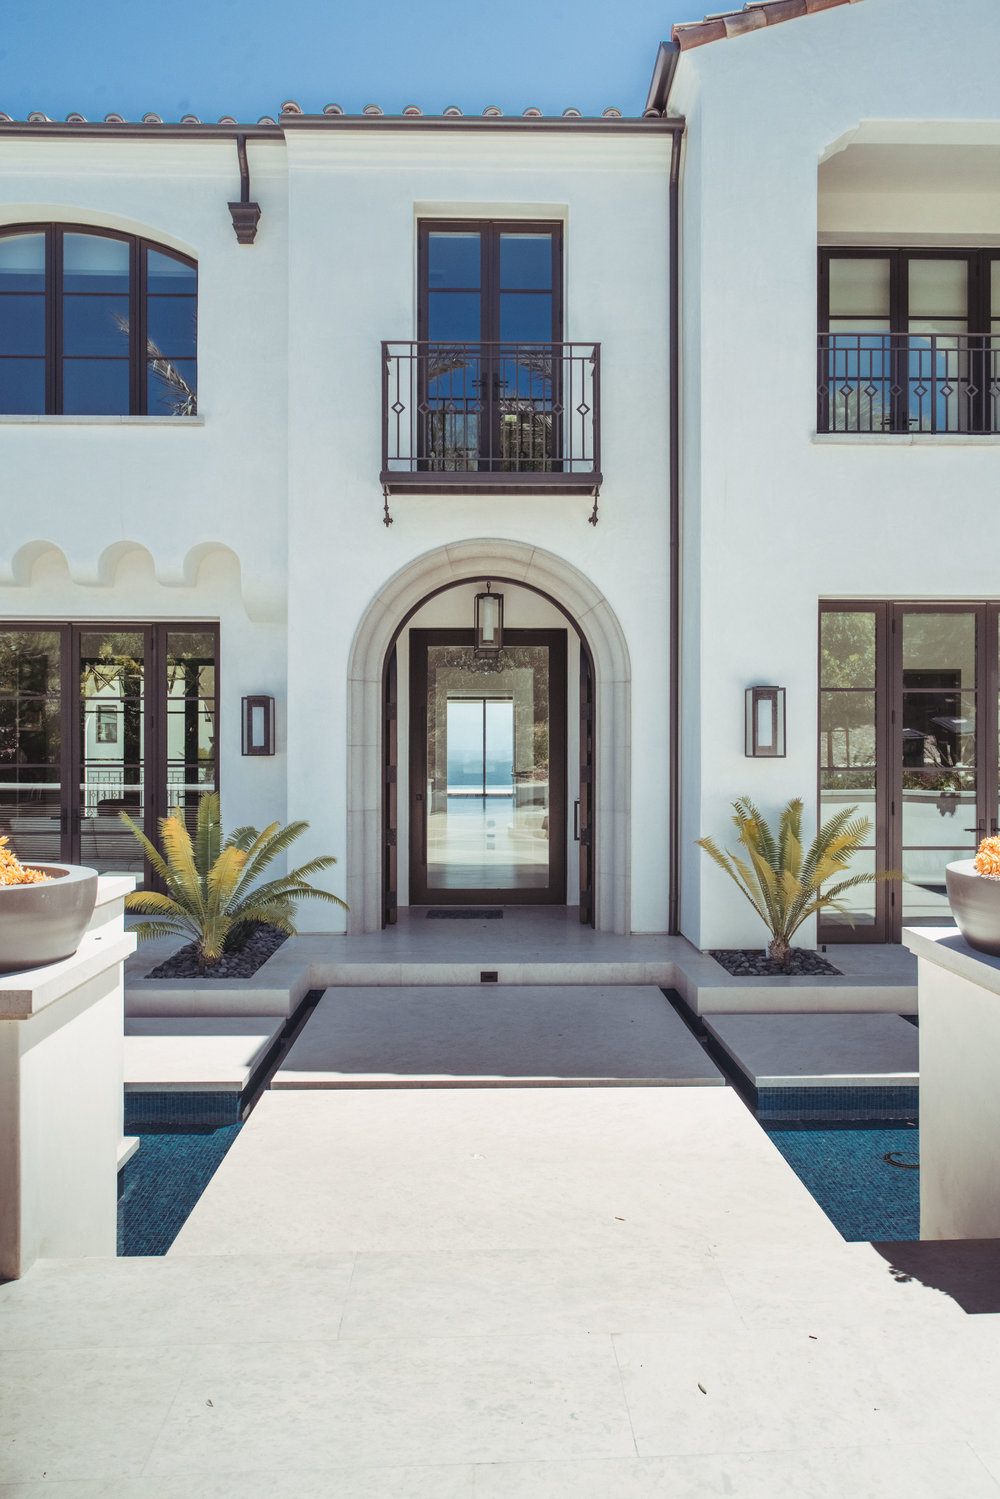 Crystal Cove Contemporary Spanish Revival Entryway by Oatman Architects